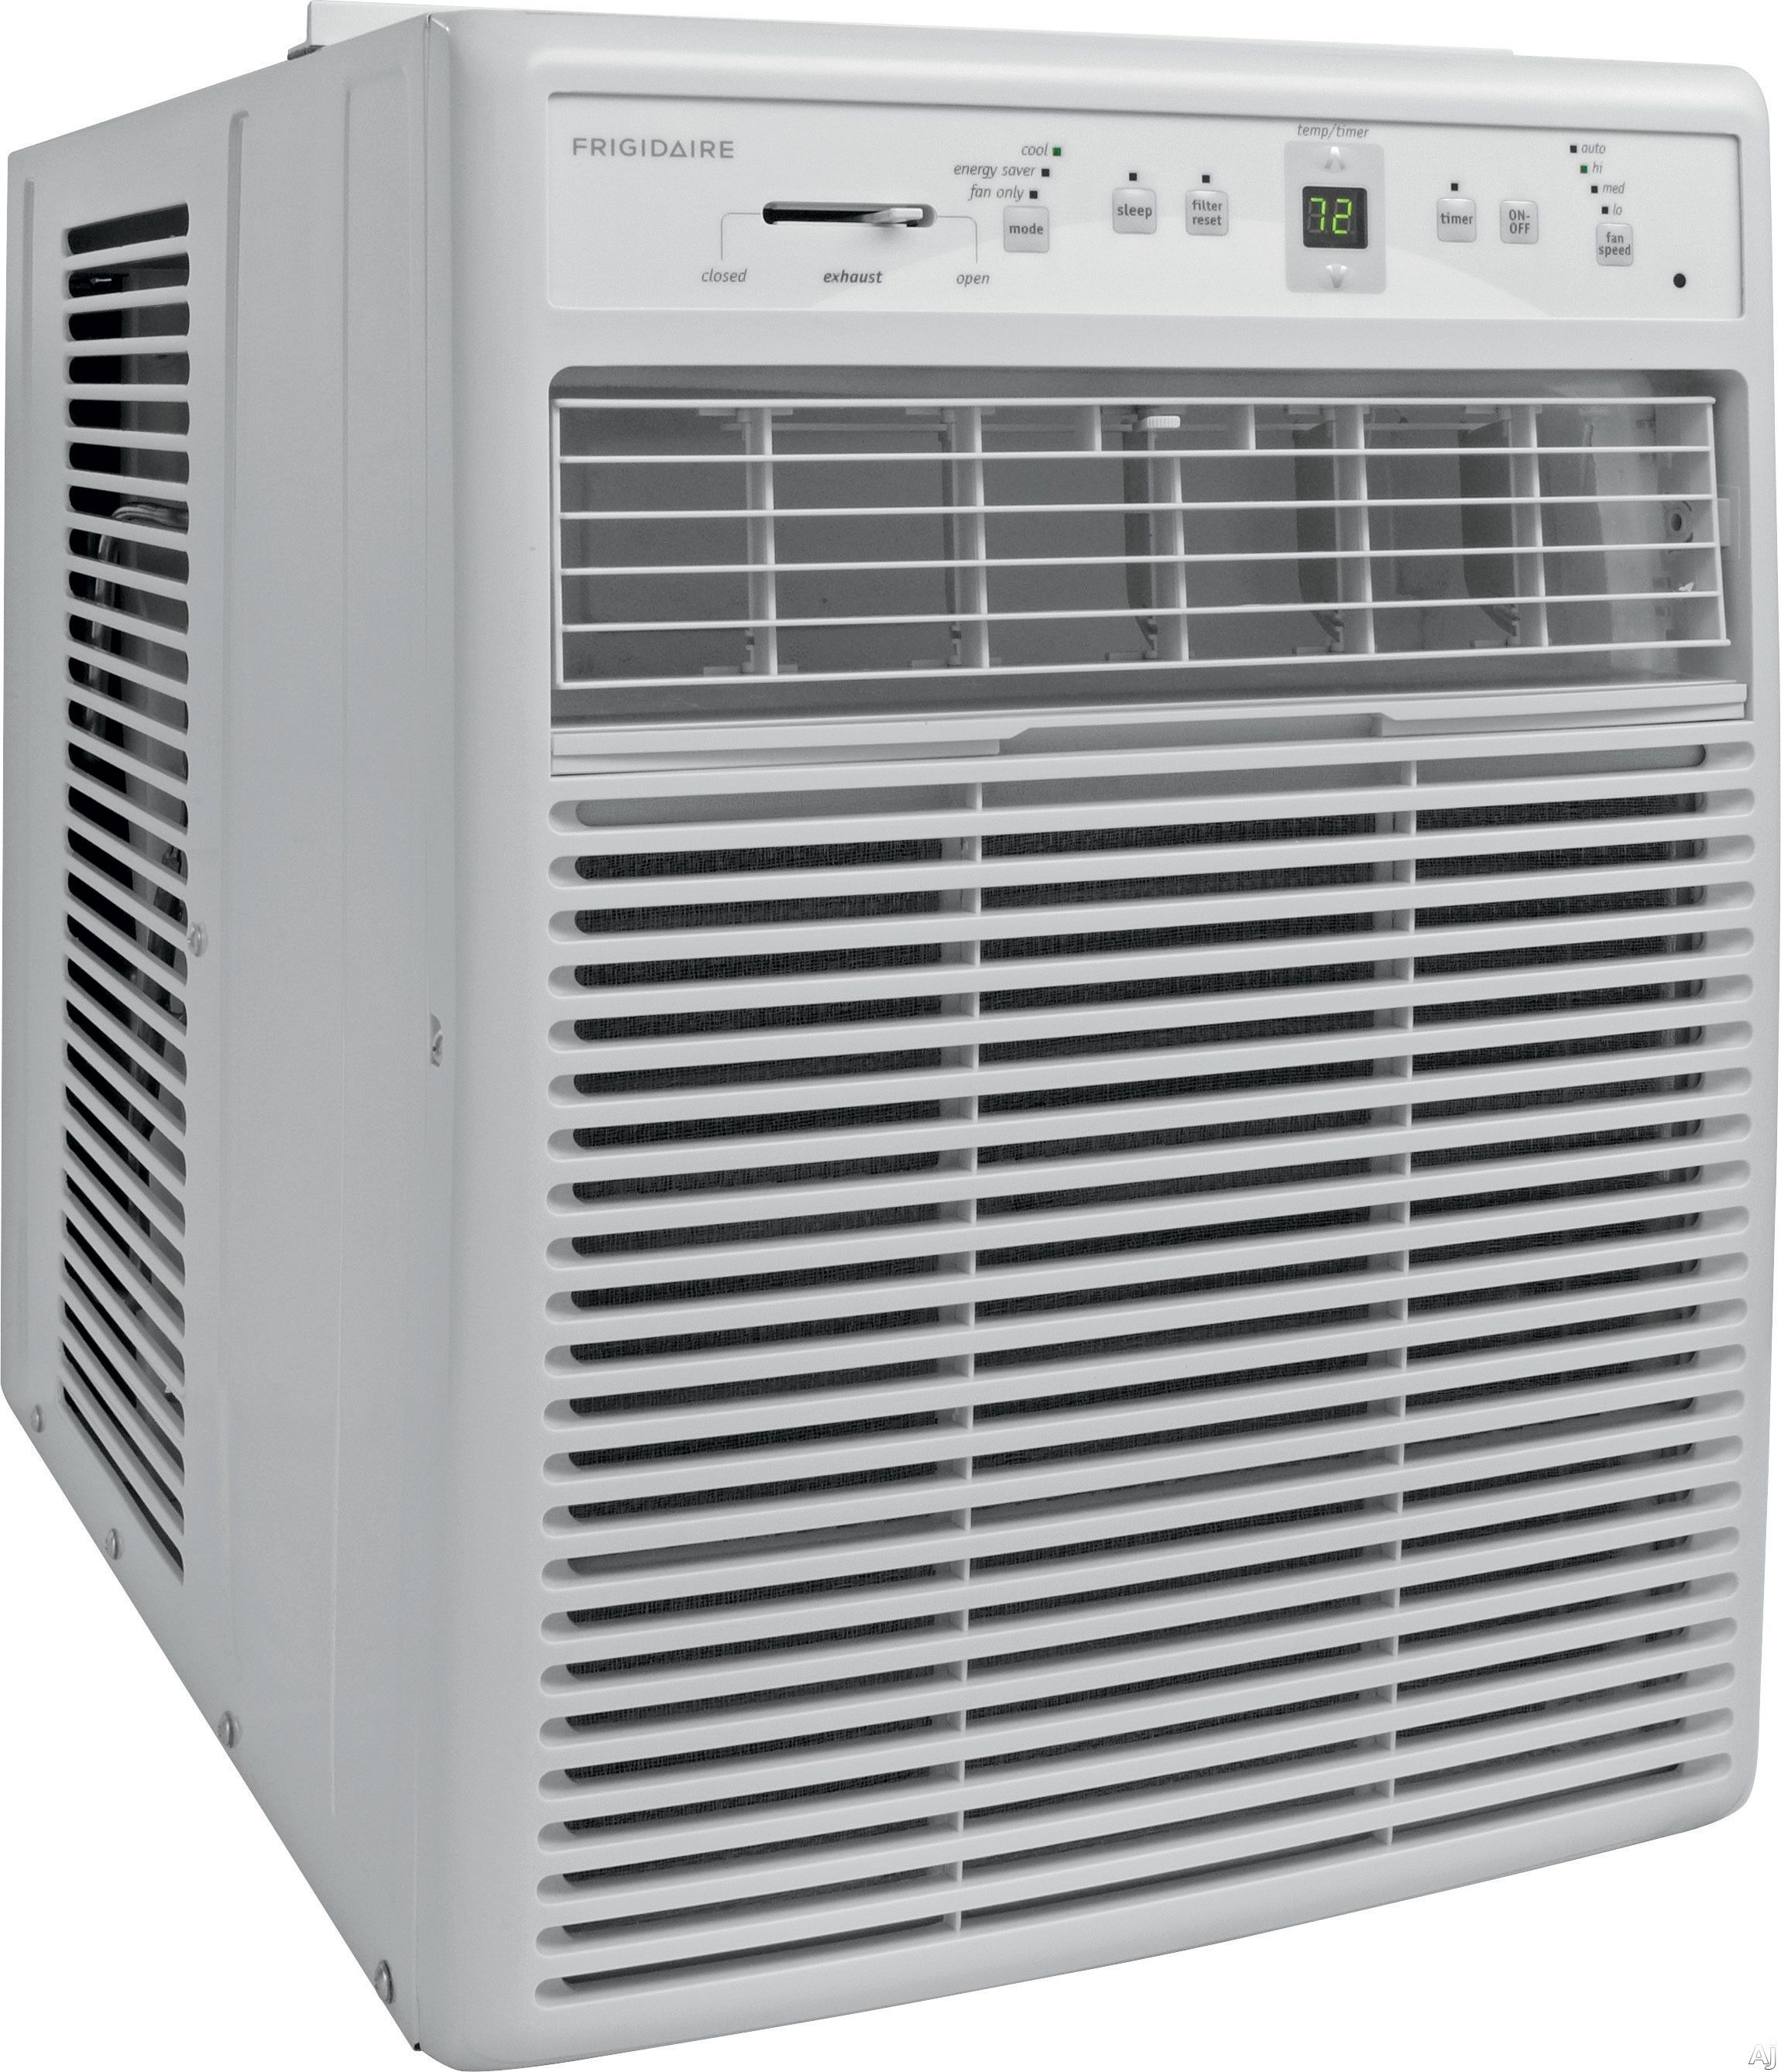 Frigidaire Ffrs1022q1 10 000 Btu Slider Casement Air Conditioner With 9 5 Eer R 410a Refrigerant 3 4 Pts Hr Dehumidification 450 Sq Ft Cooling Area Energy Window Air Conditioner Casement Window Air Conditioner Casement Air Conditioner